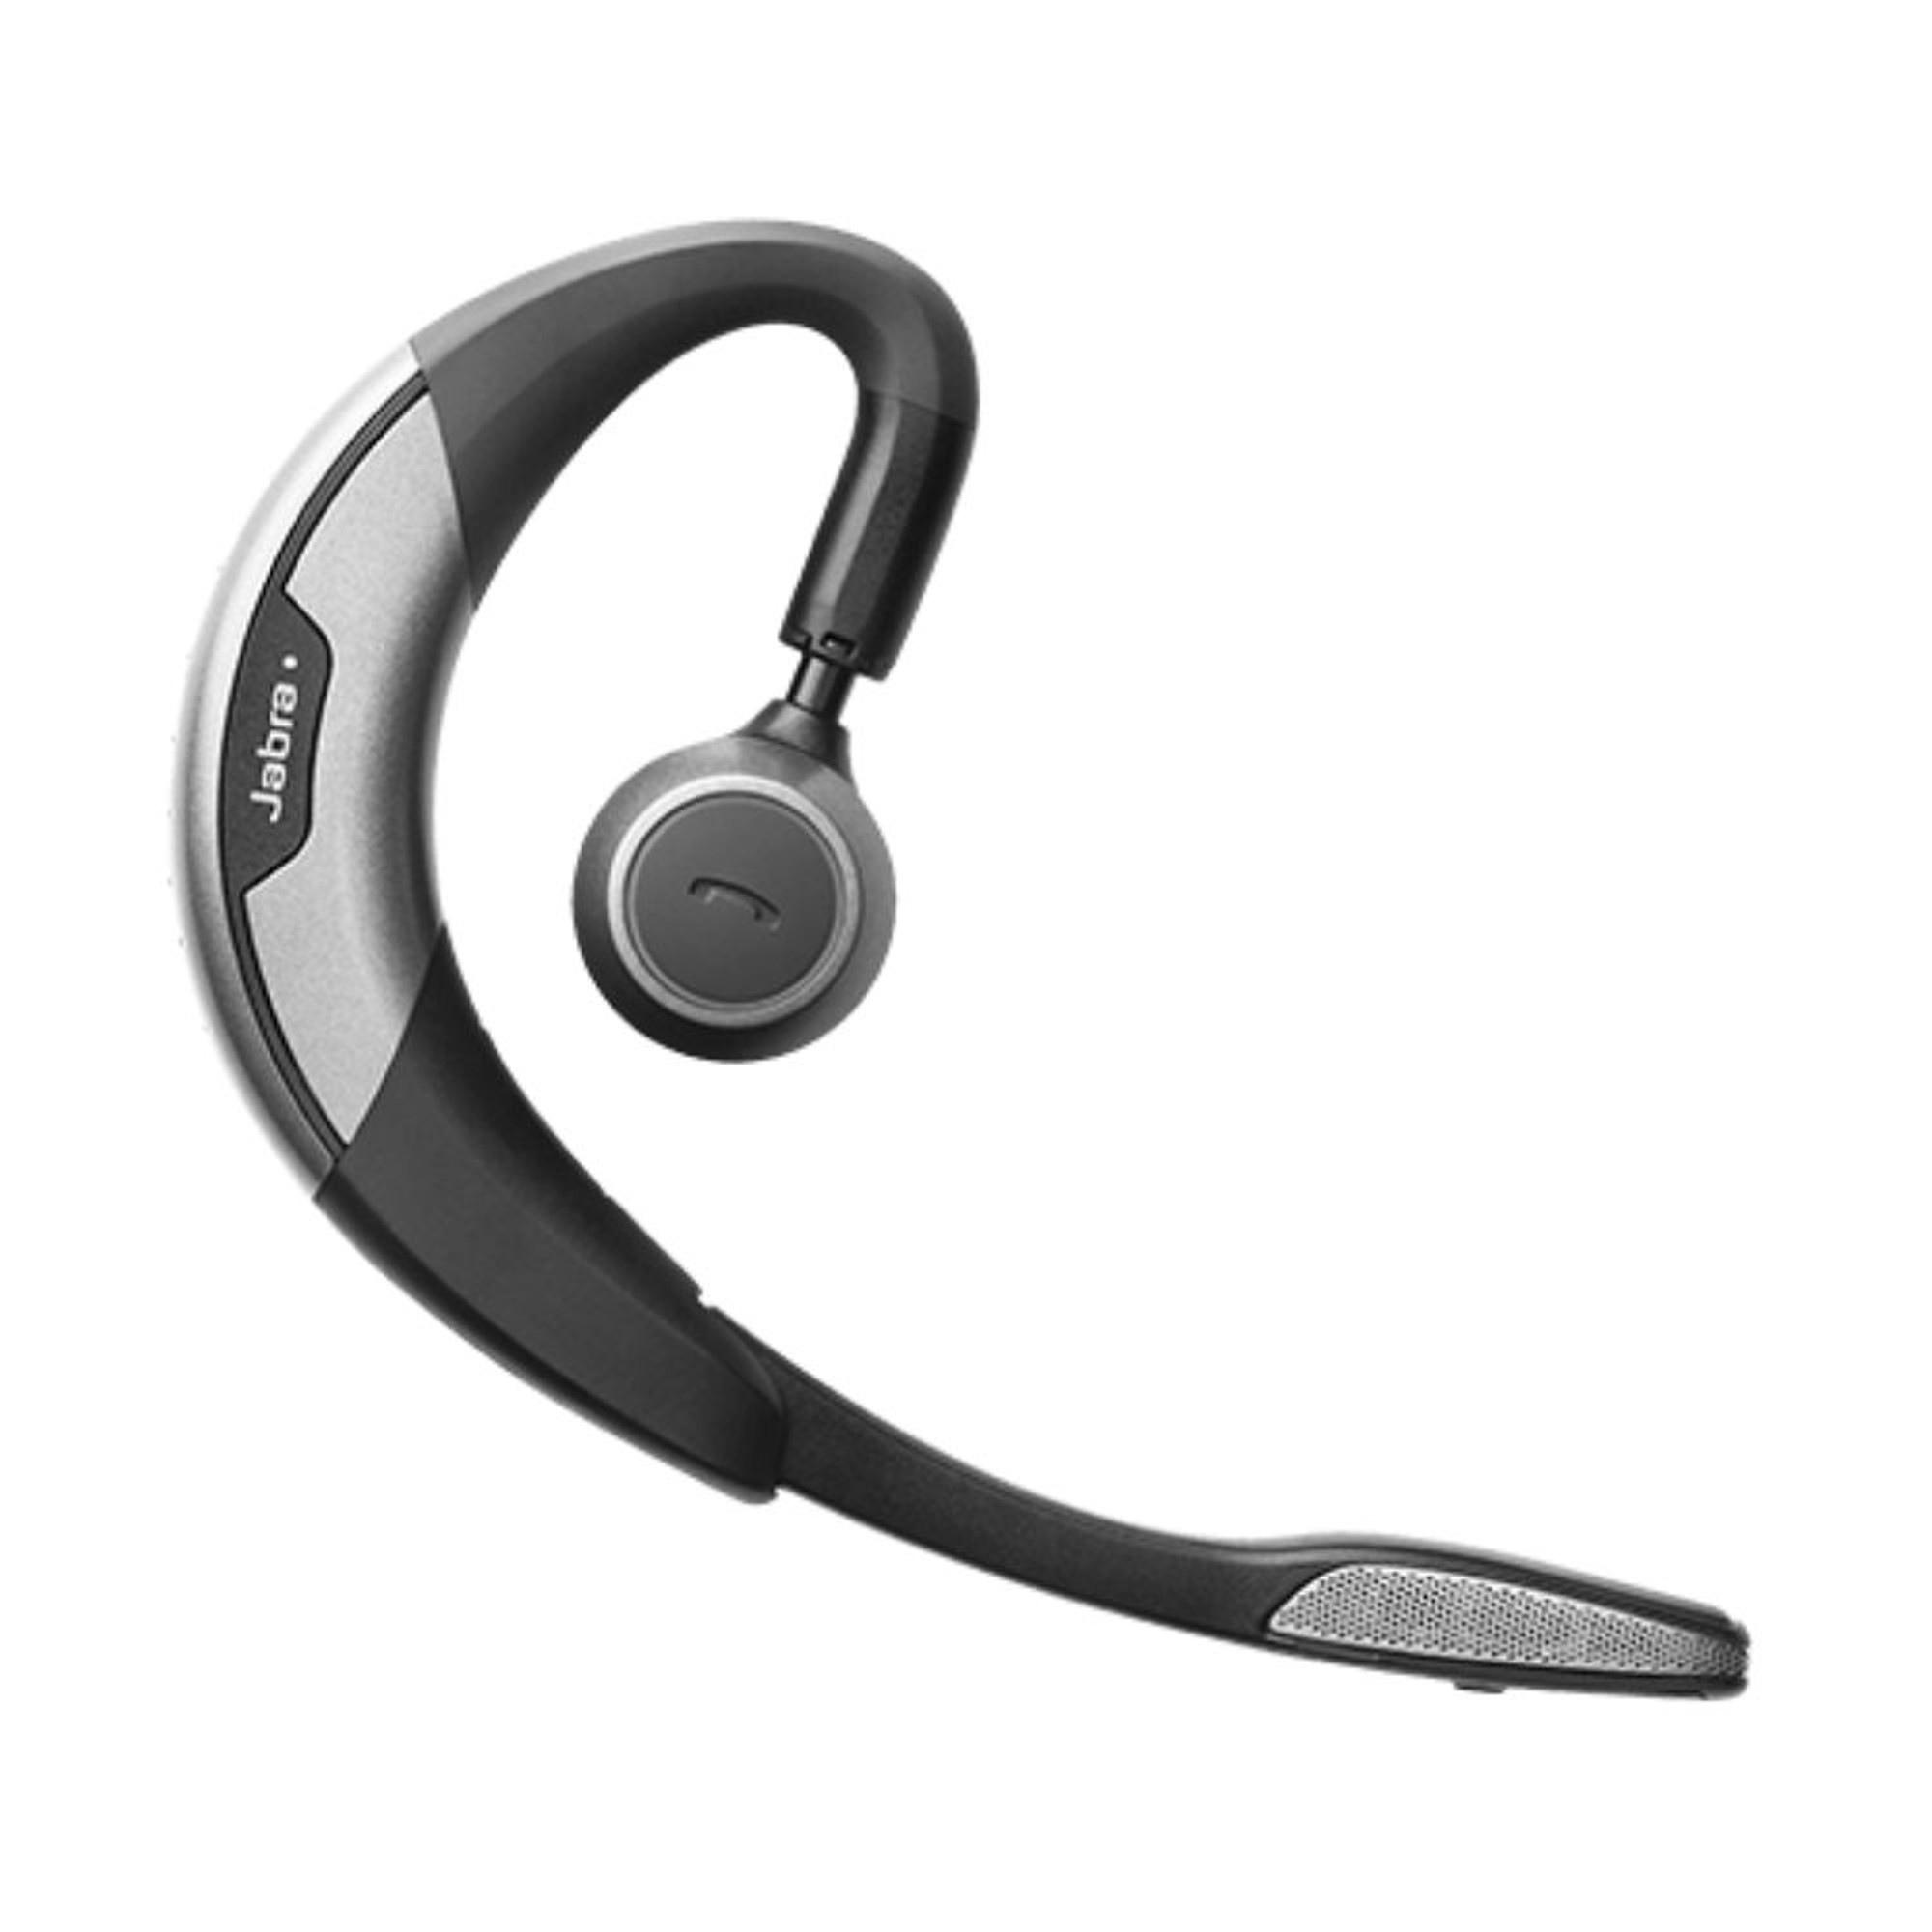 Jabra Motion Wireless Bluetooth Headset Jabra Headsets Singapore Headphones Sg